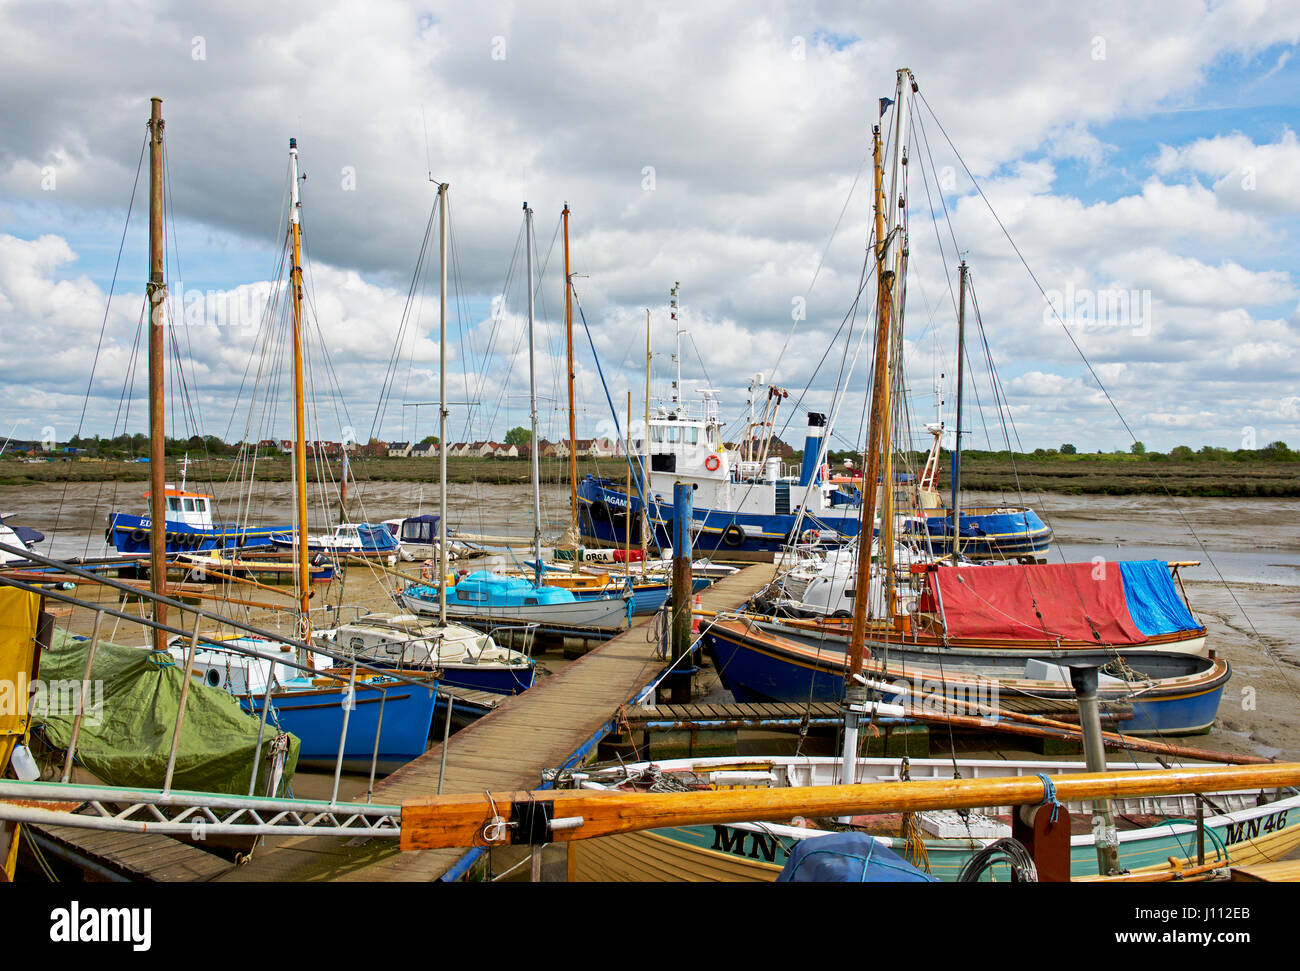 Boats in Tollesbury Marina, Essex, England UK Stock Photo